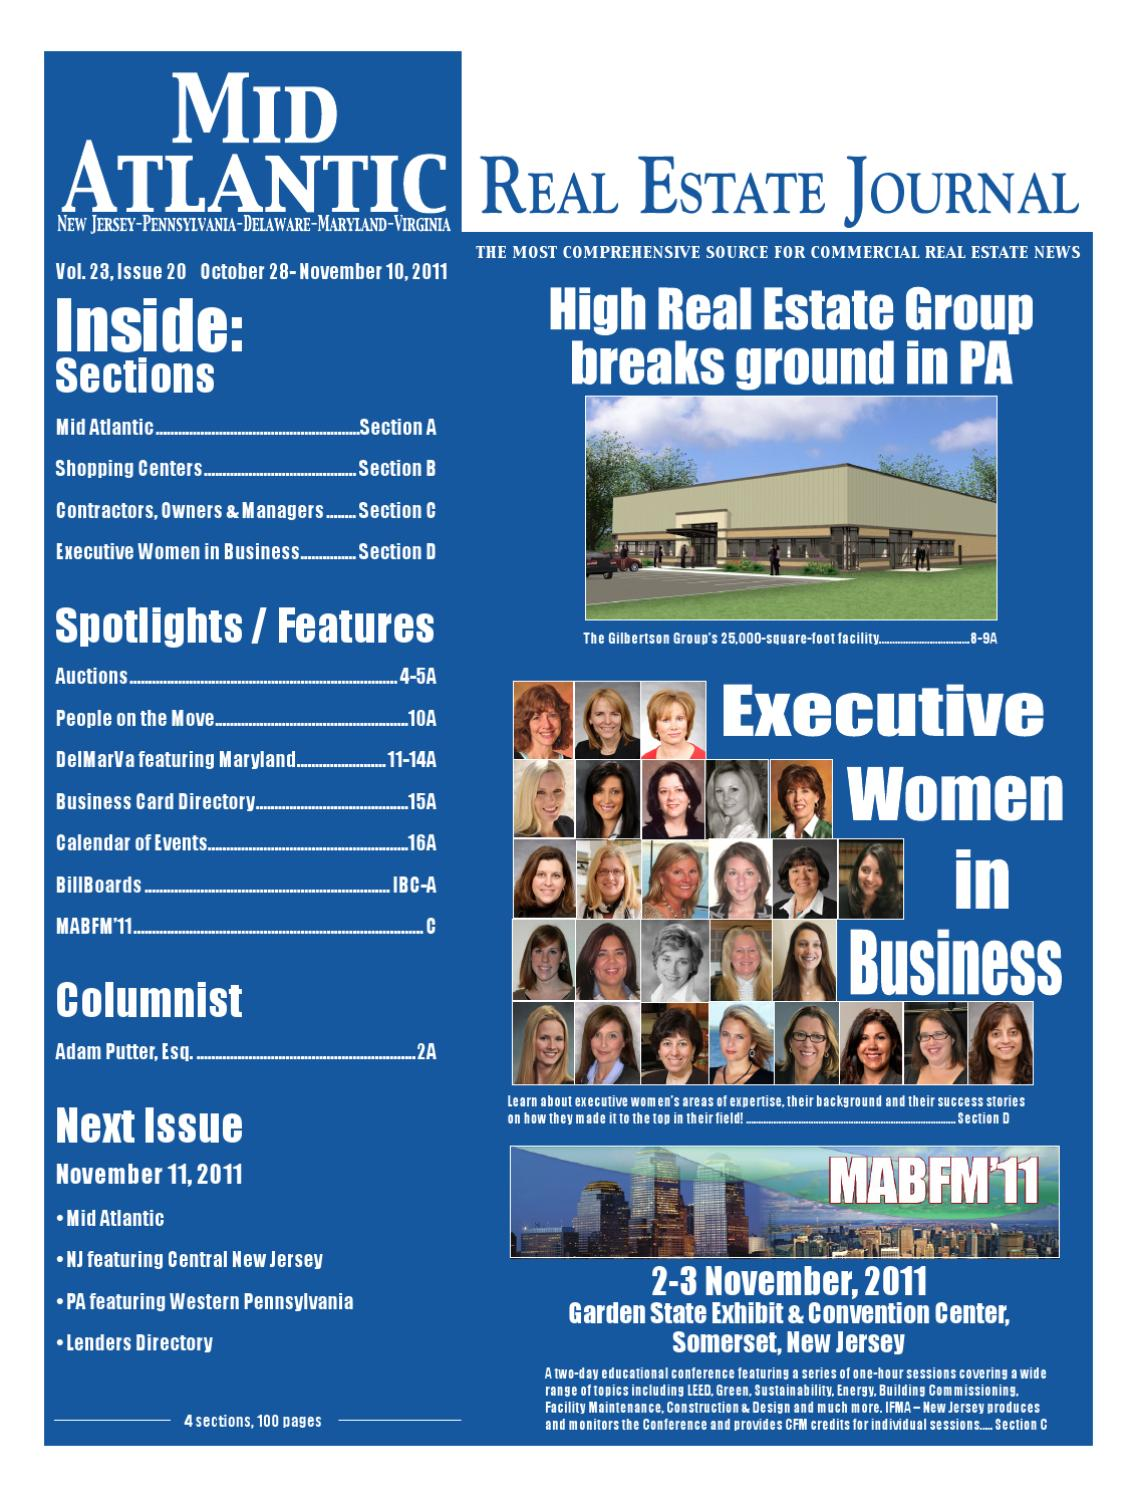 10-28-2011 by Mid Atlantic Real Estate Journal - issuu